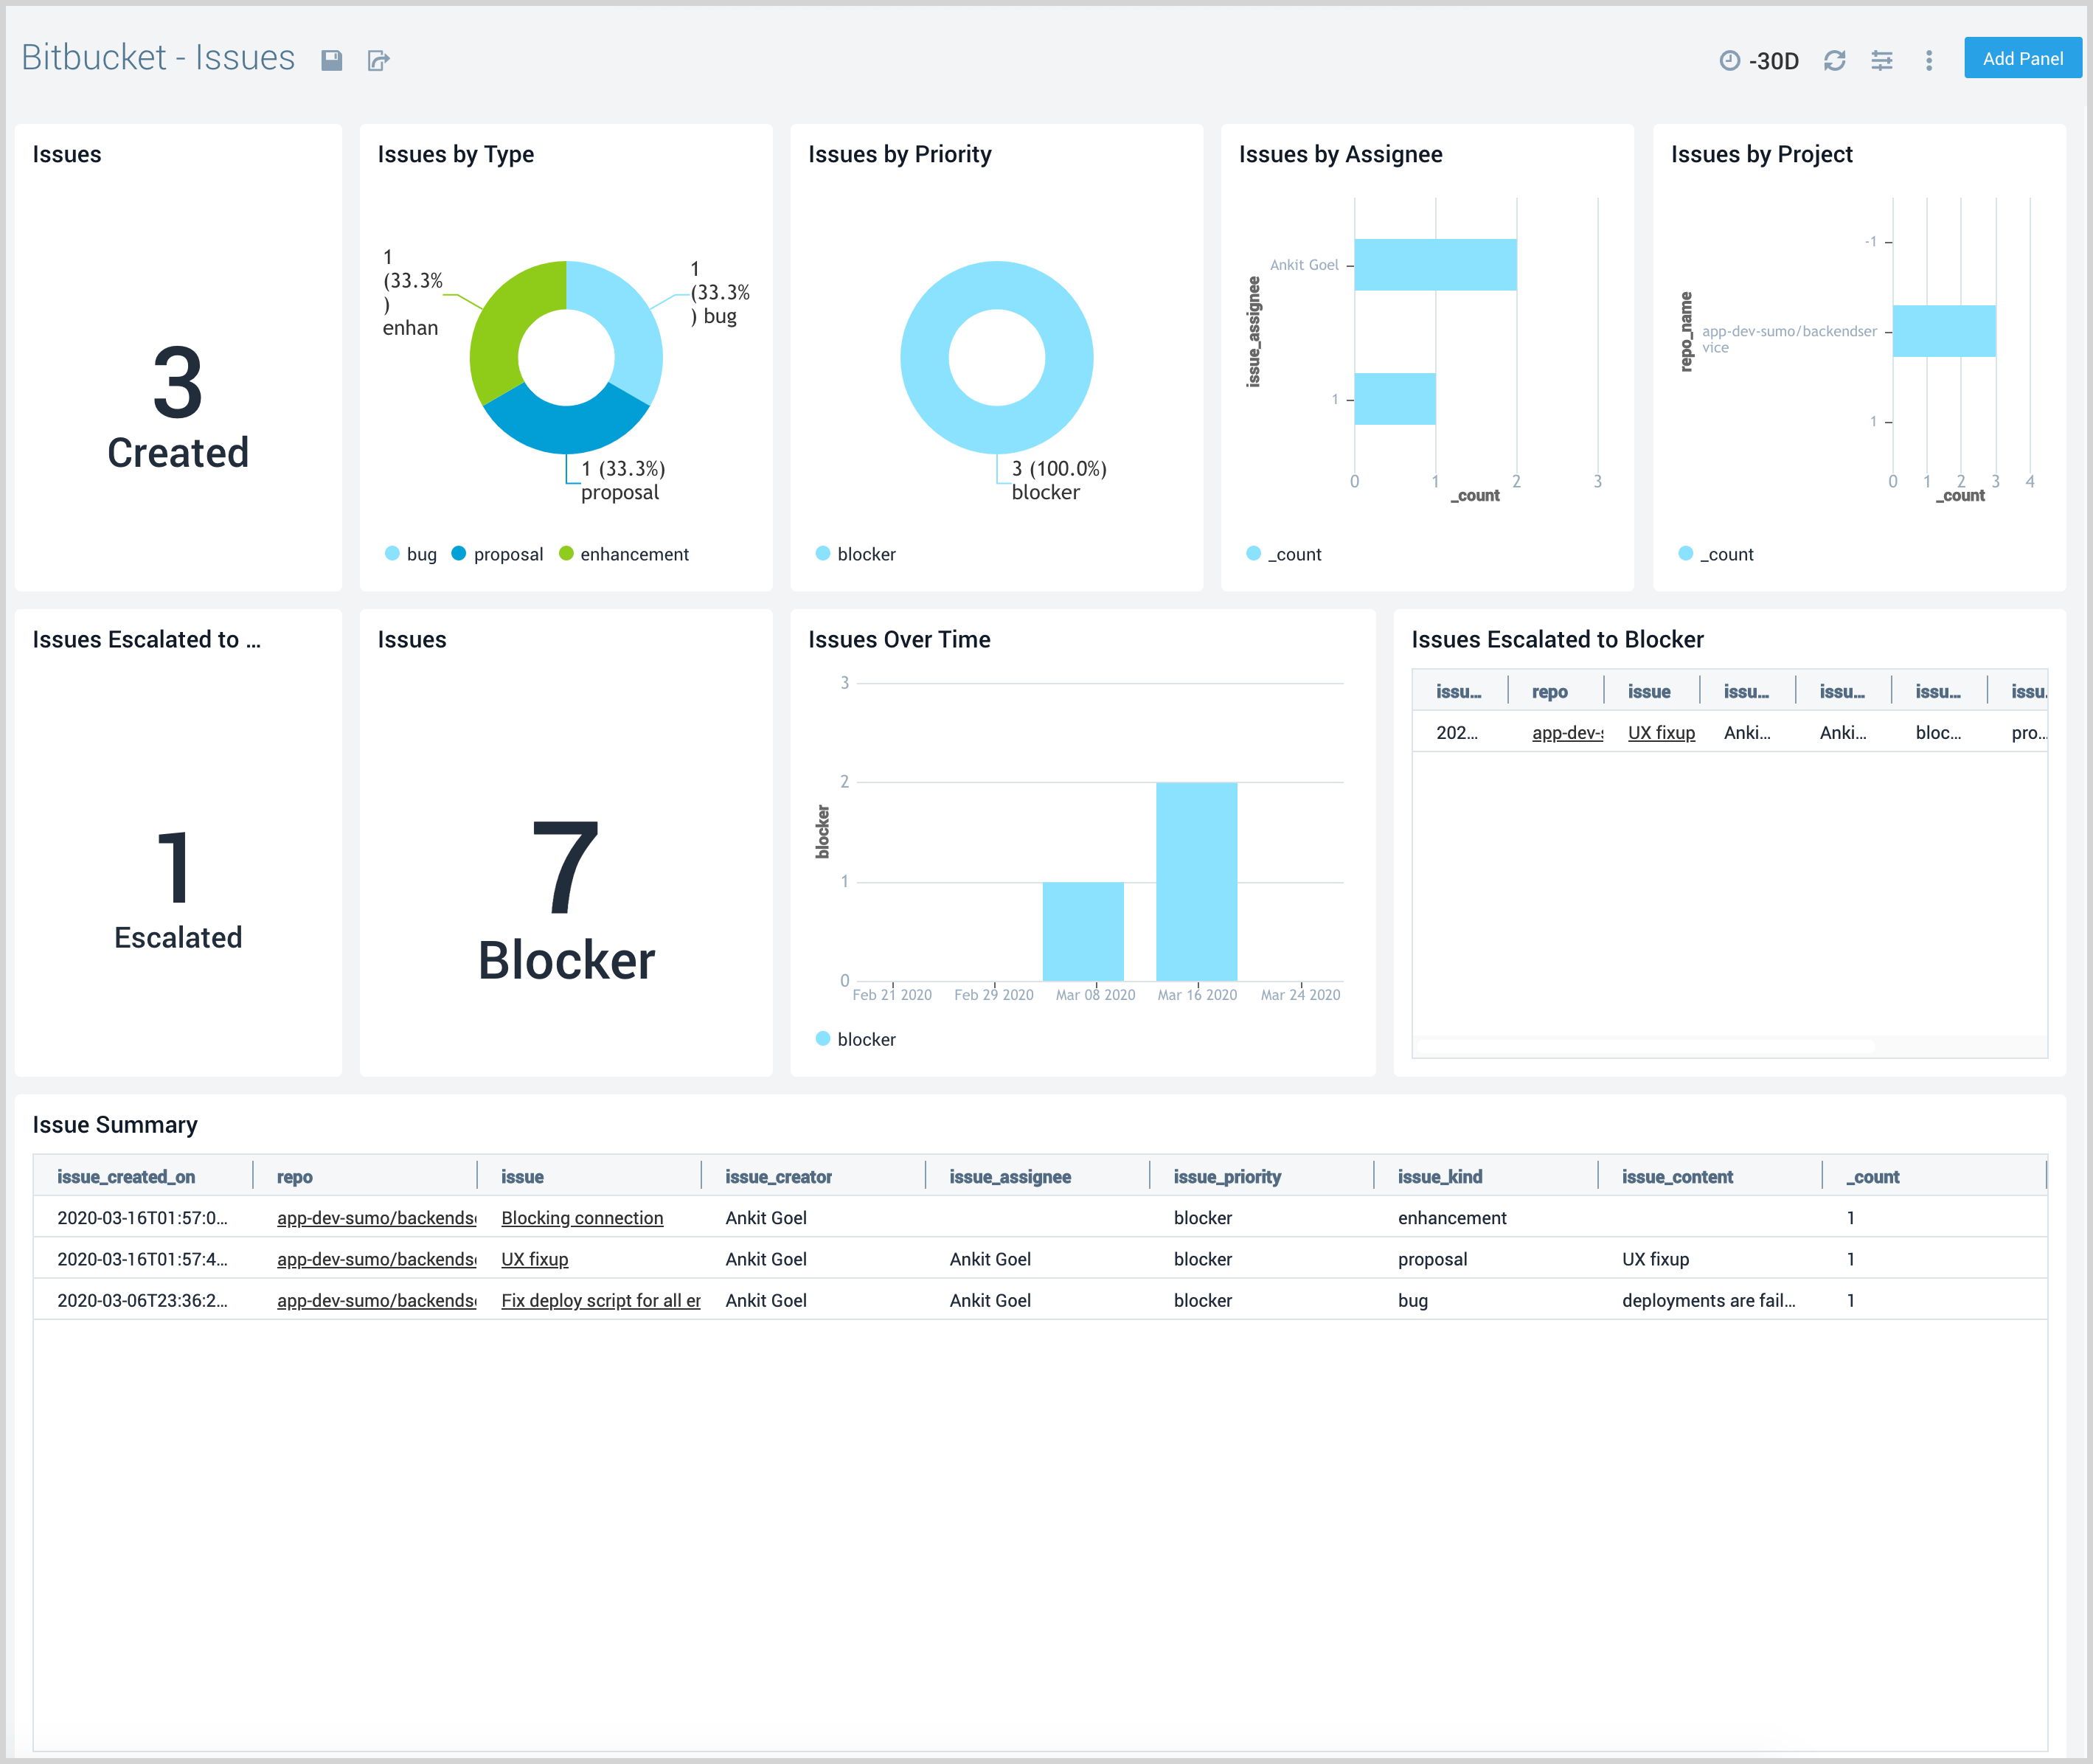 Visualize issues by priority, projects, users, and type.